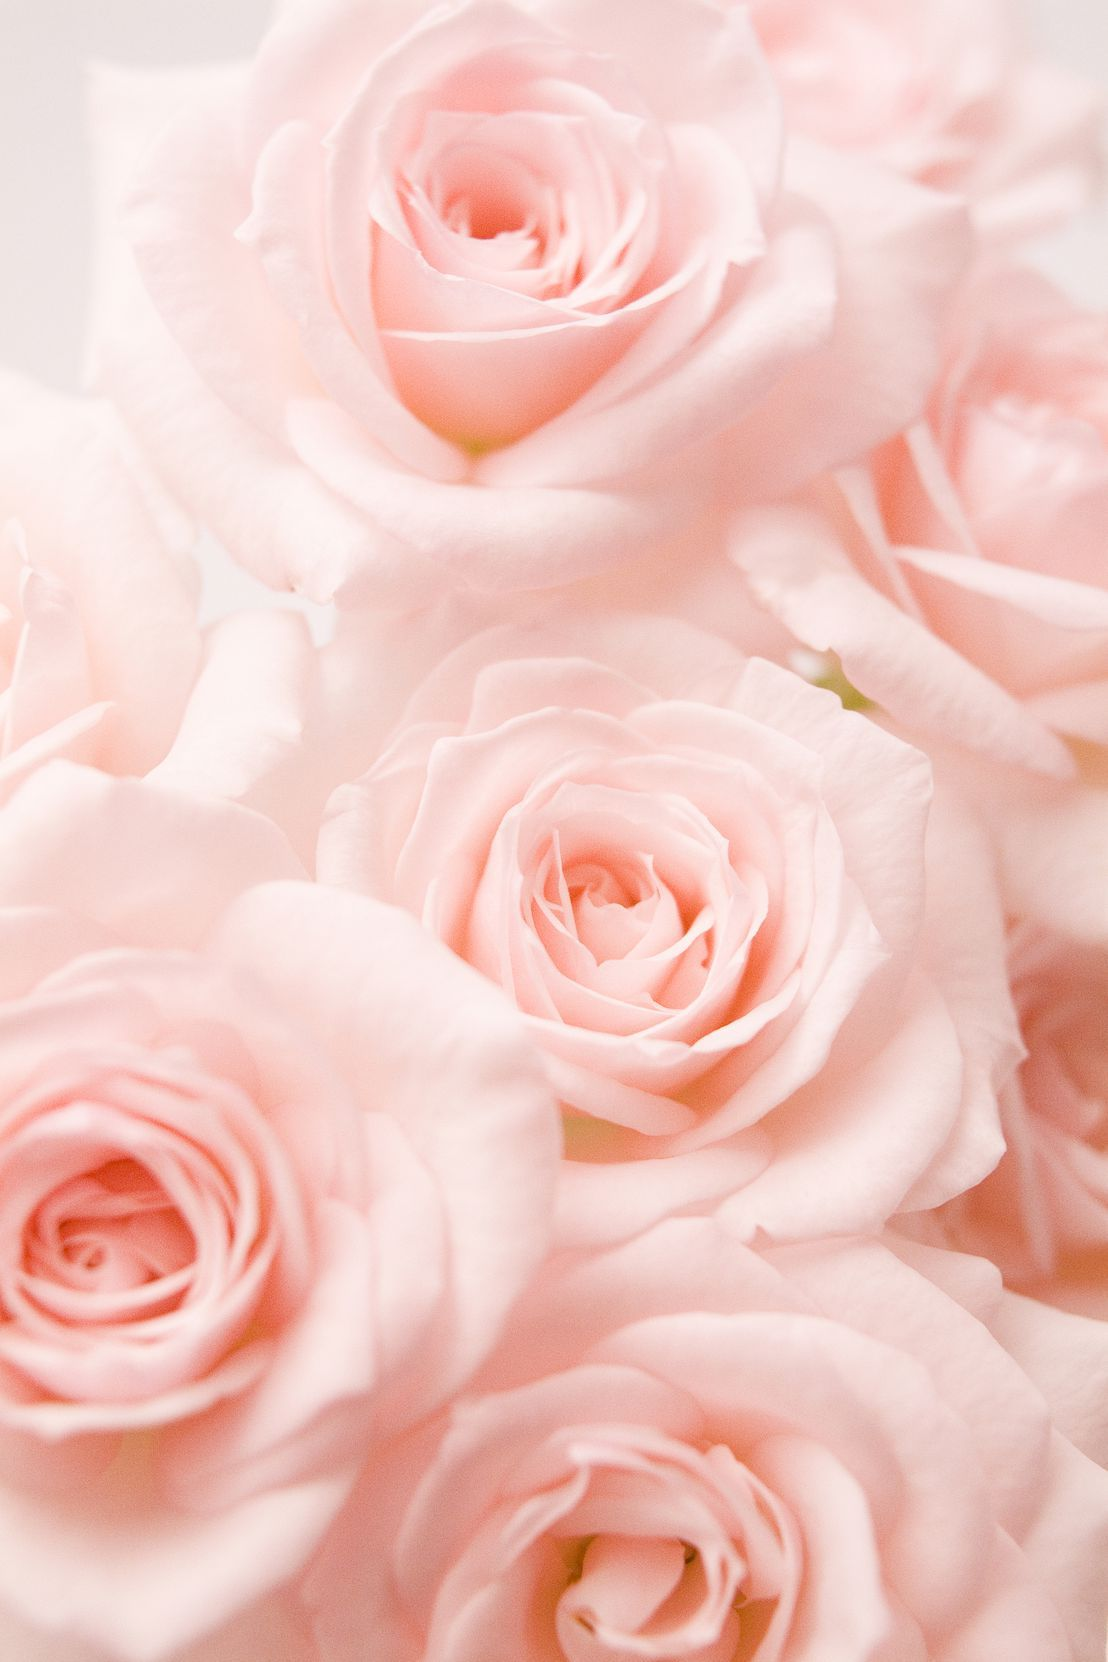 Coral Roses Are The Perfect Way To Celebrate Your First Valentine S Day Together Pink Roses Background Rose Color Meanings Flower Aesthetic